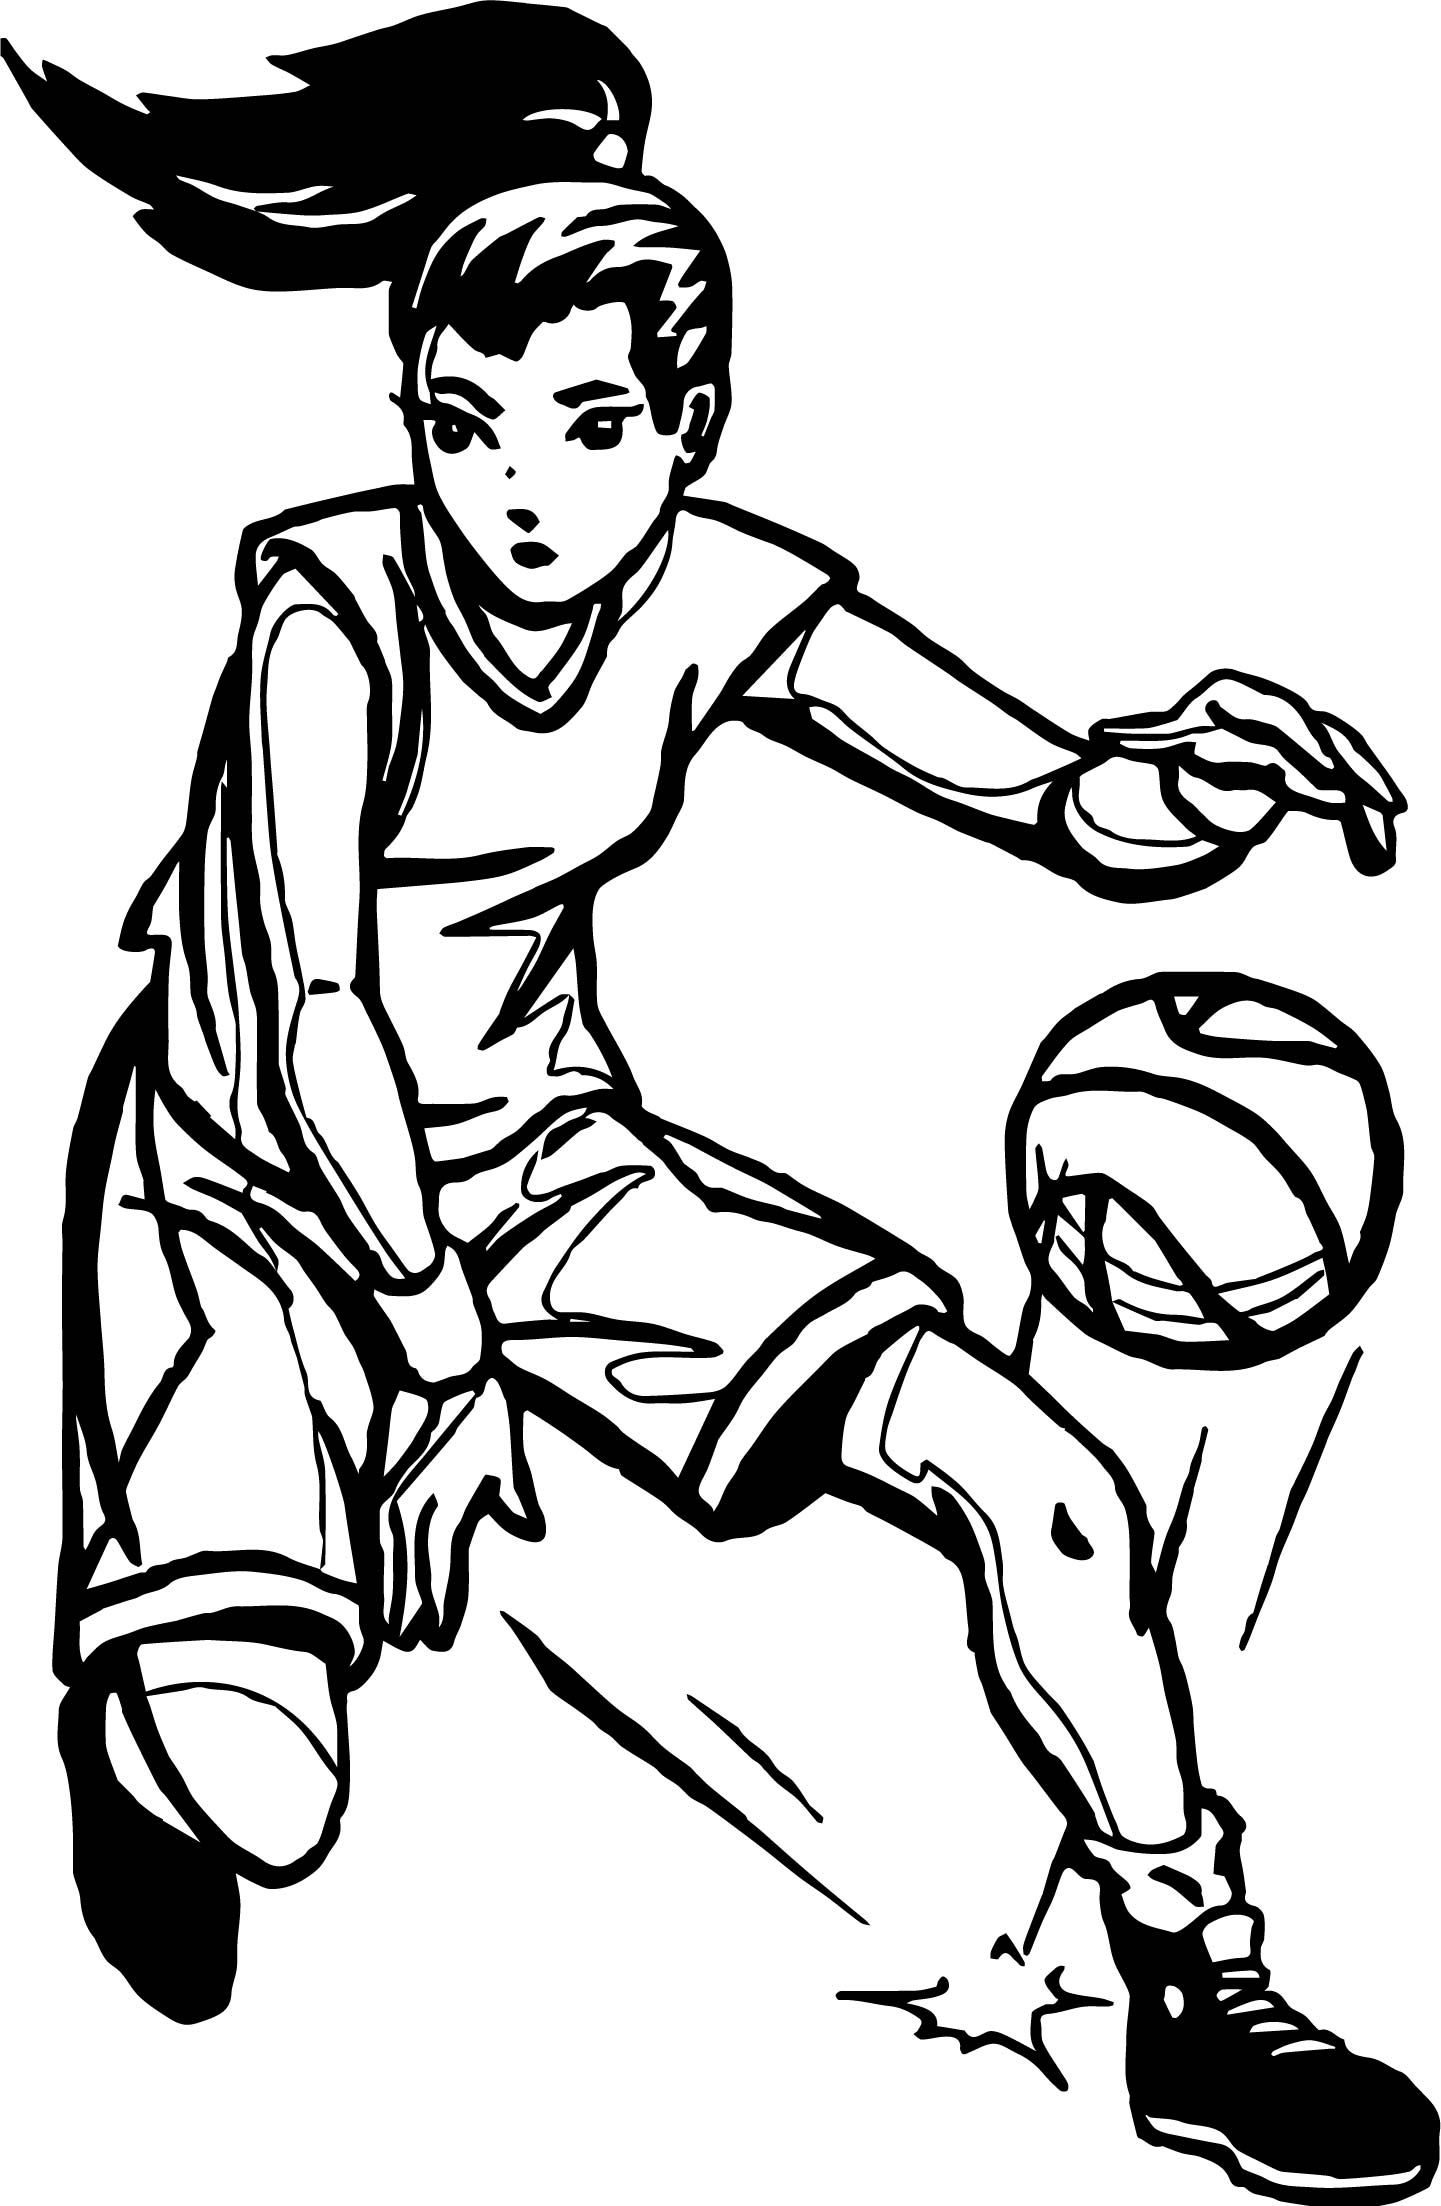 Awesome Girl Player Playing Basketball Coloring Page